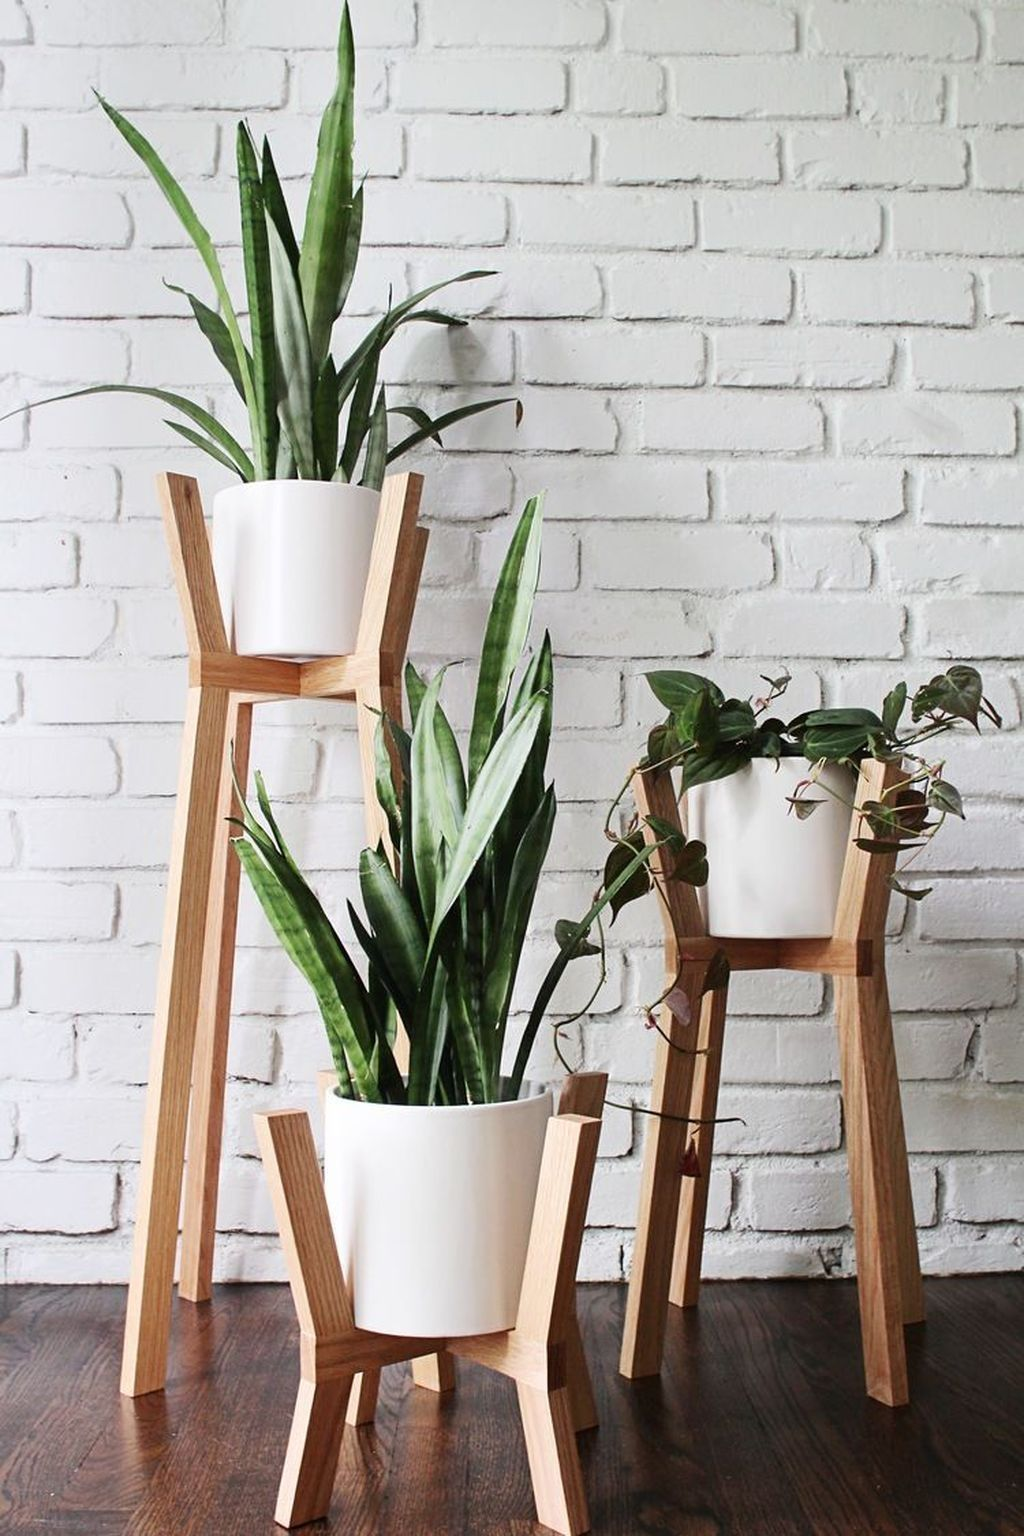 10 DIY PLANT STAND IDEAS FOR AN OUTDOOR AND INDOOR DECORATION  Unique Diy Plant Stand Ideas To Fill Your Home With Greenery